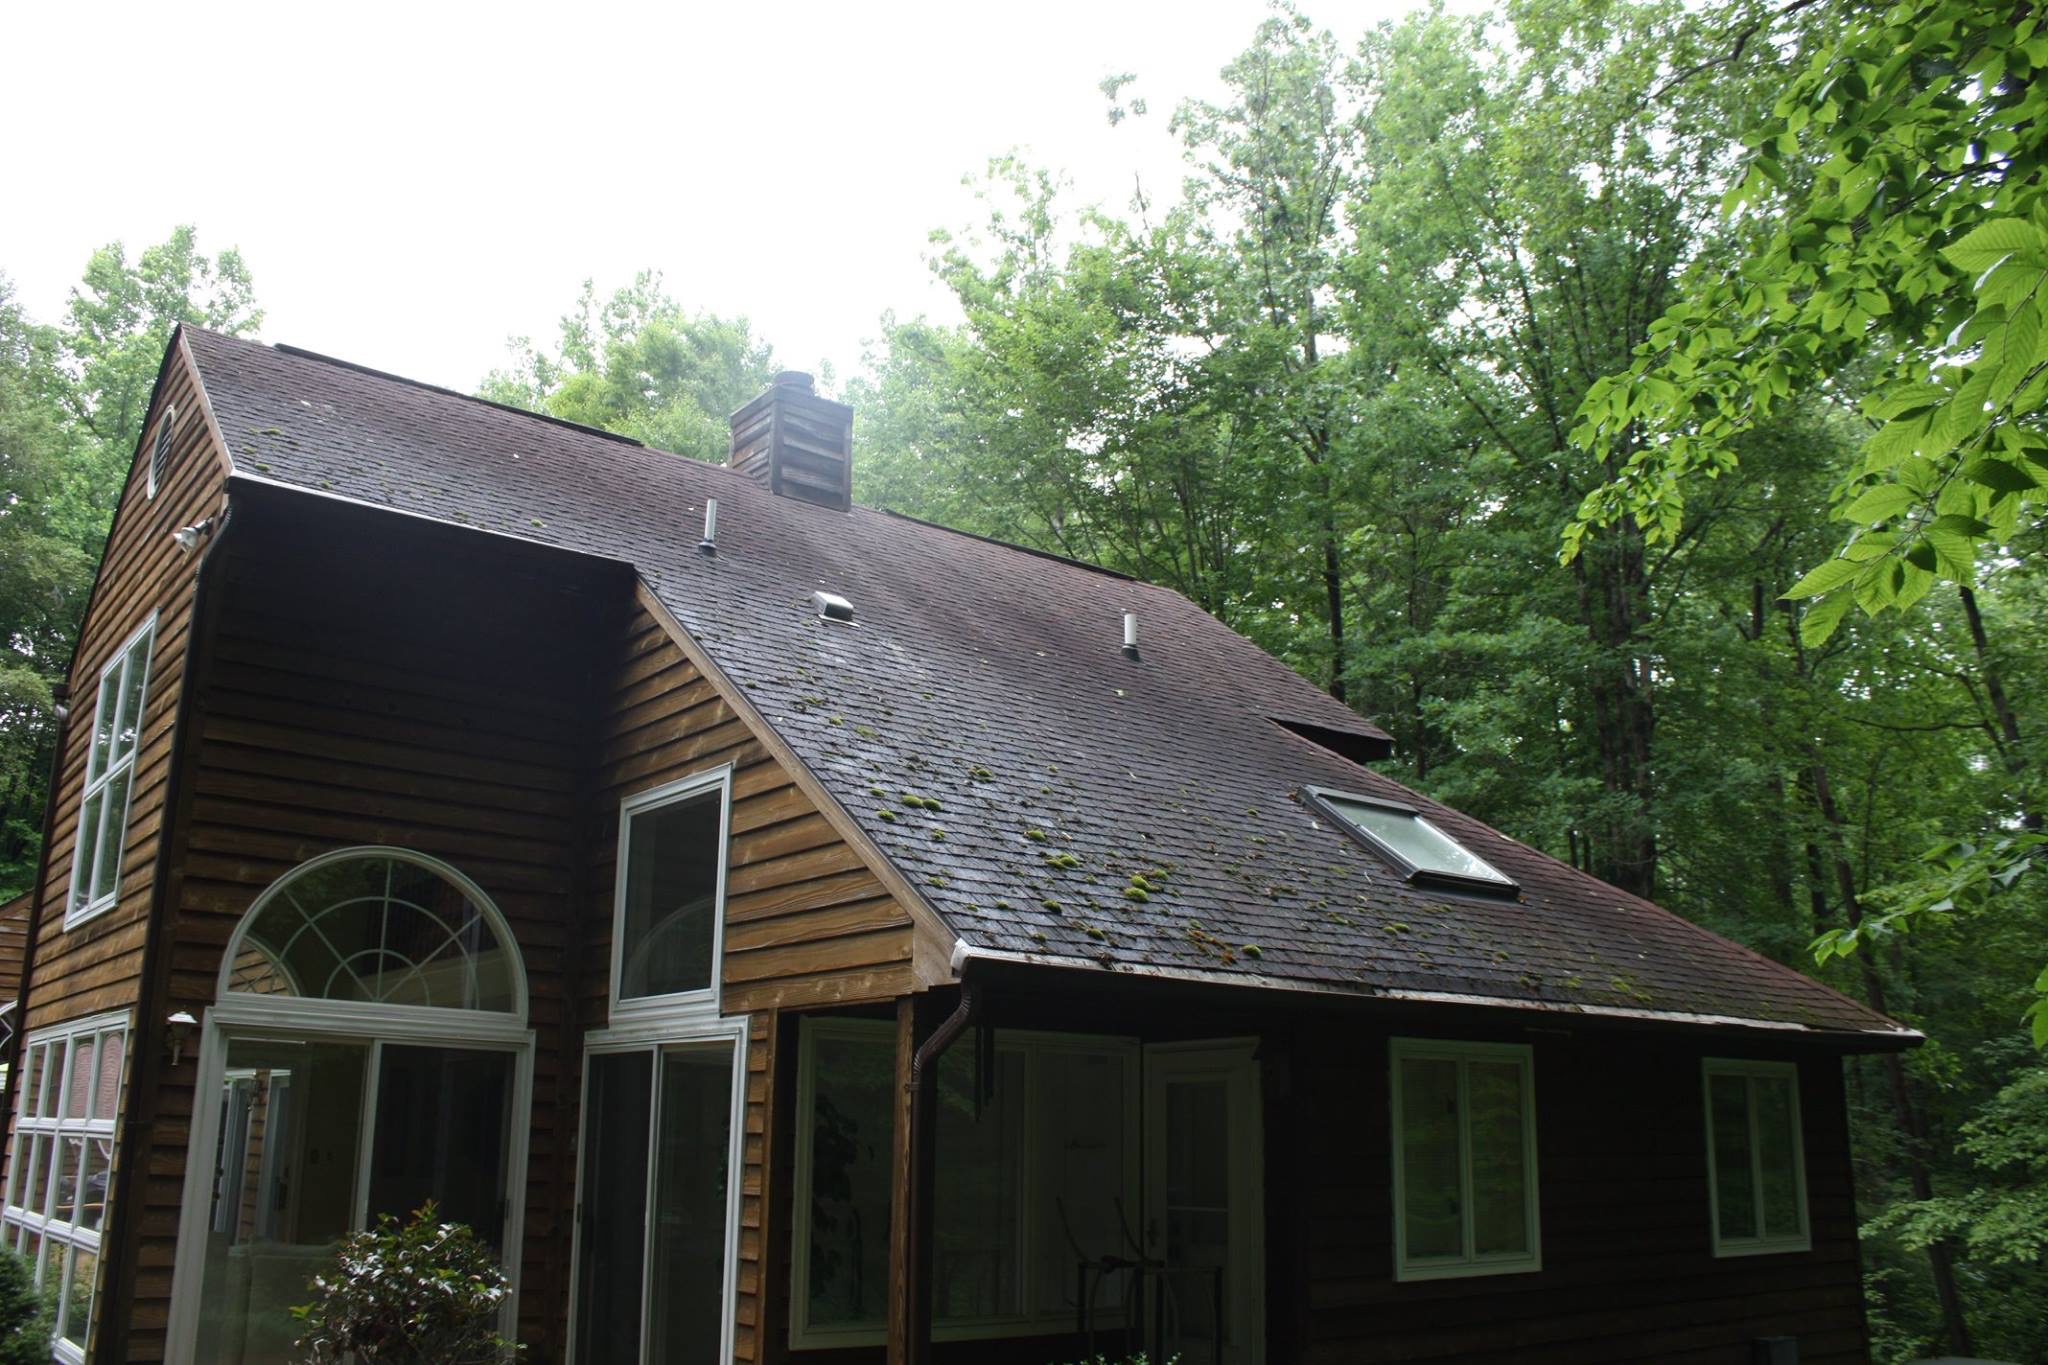 Notice how the moss tends to group up on the lower regions of a slanted roof. These regions get less sun exposure because they slip into tree shadows earlier in the day and for longer than higher parts of the roof.